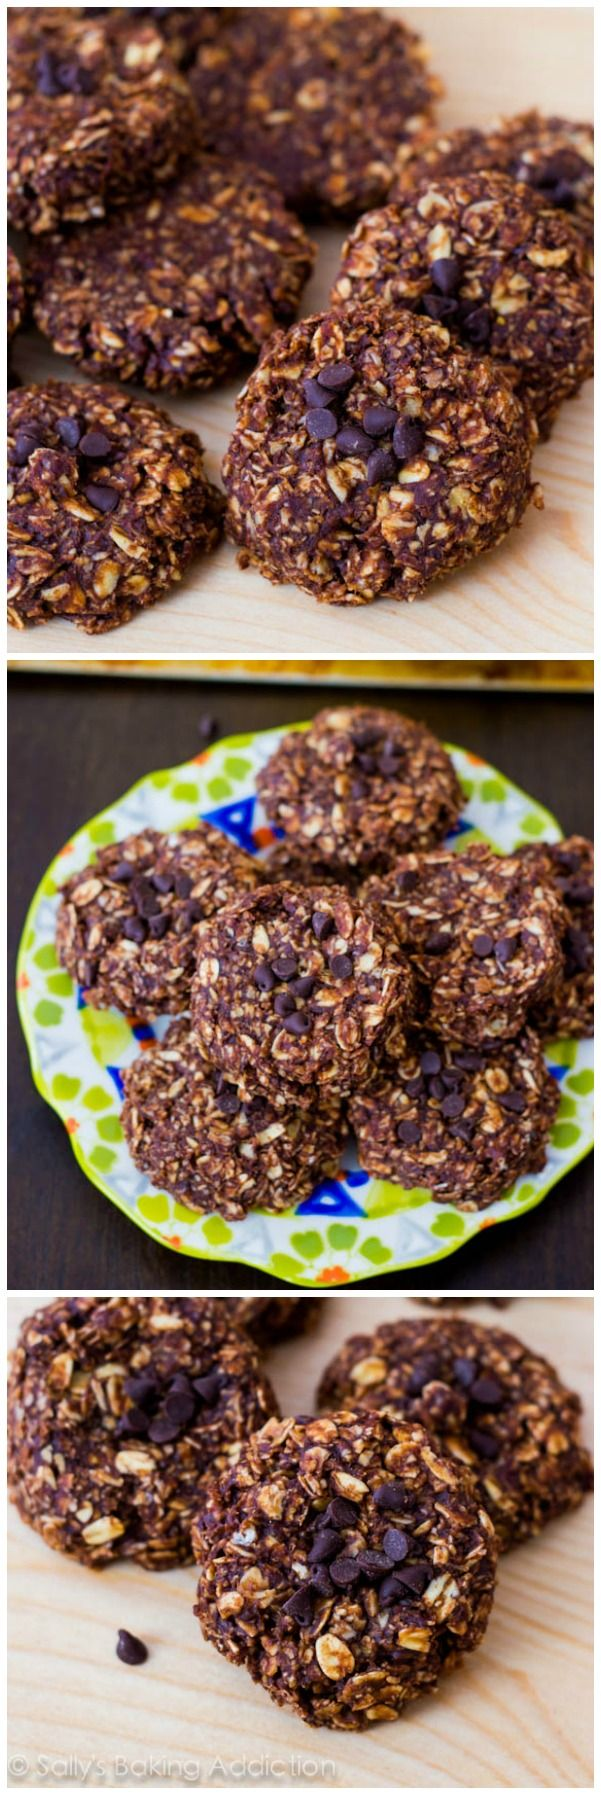 These lightened-up no bake cookies are only made with only 7 simple ingredients!